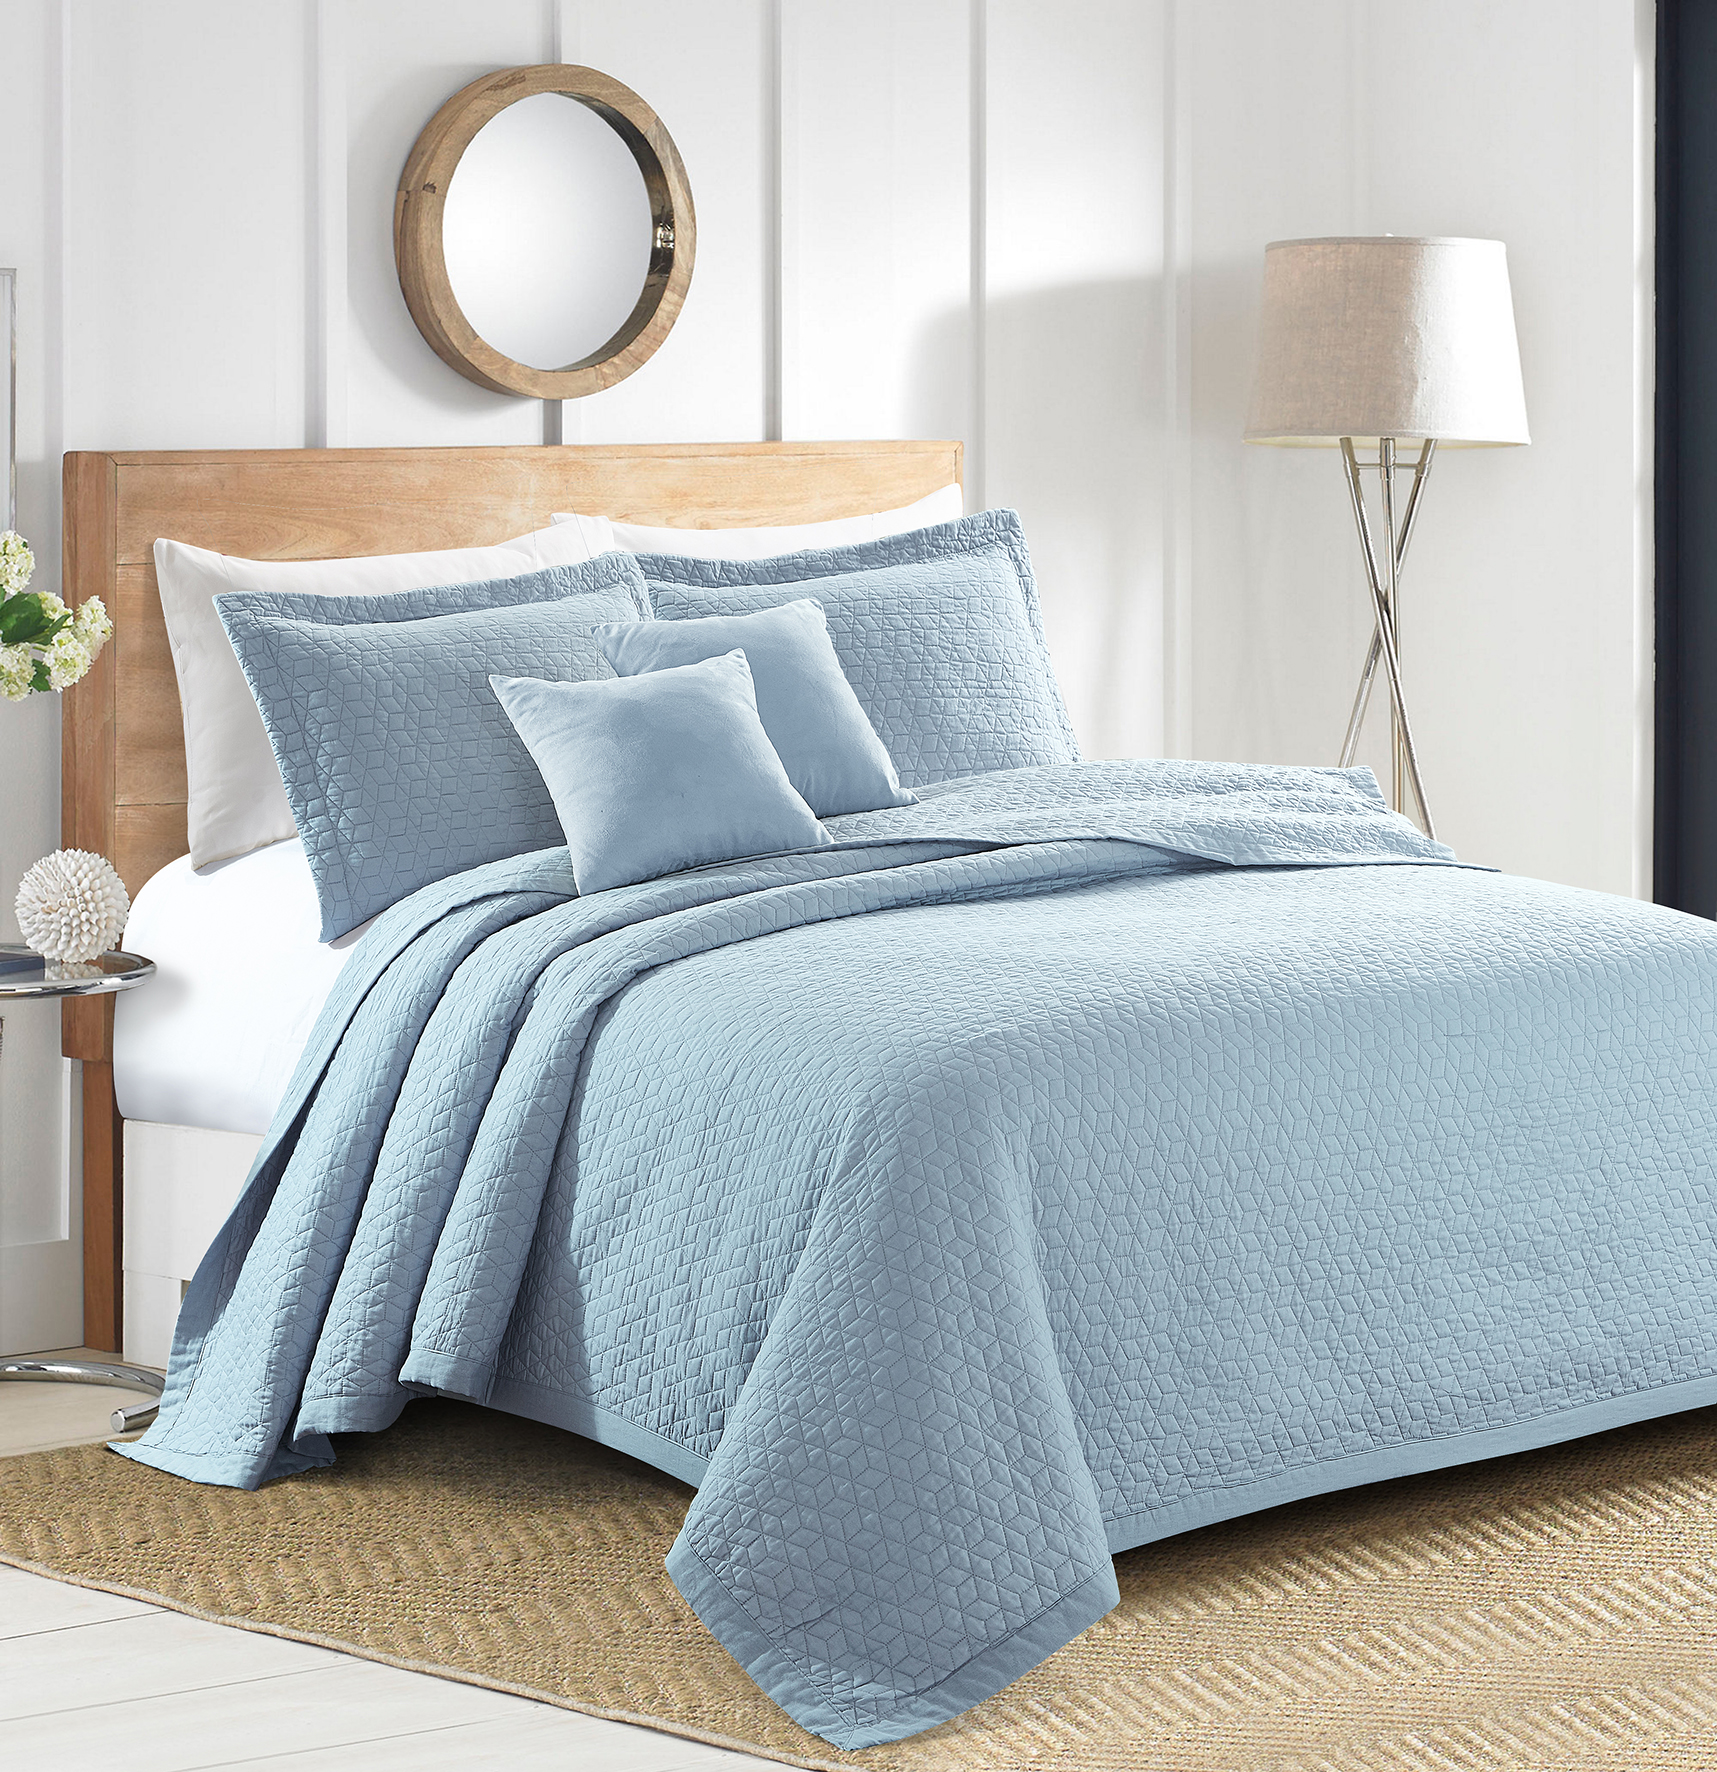 Sherry Kline Out of the Box Embroidered 3-piece King Light blue Cotton Quilt Set